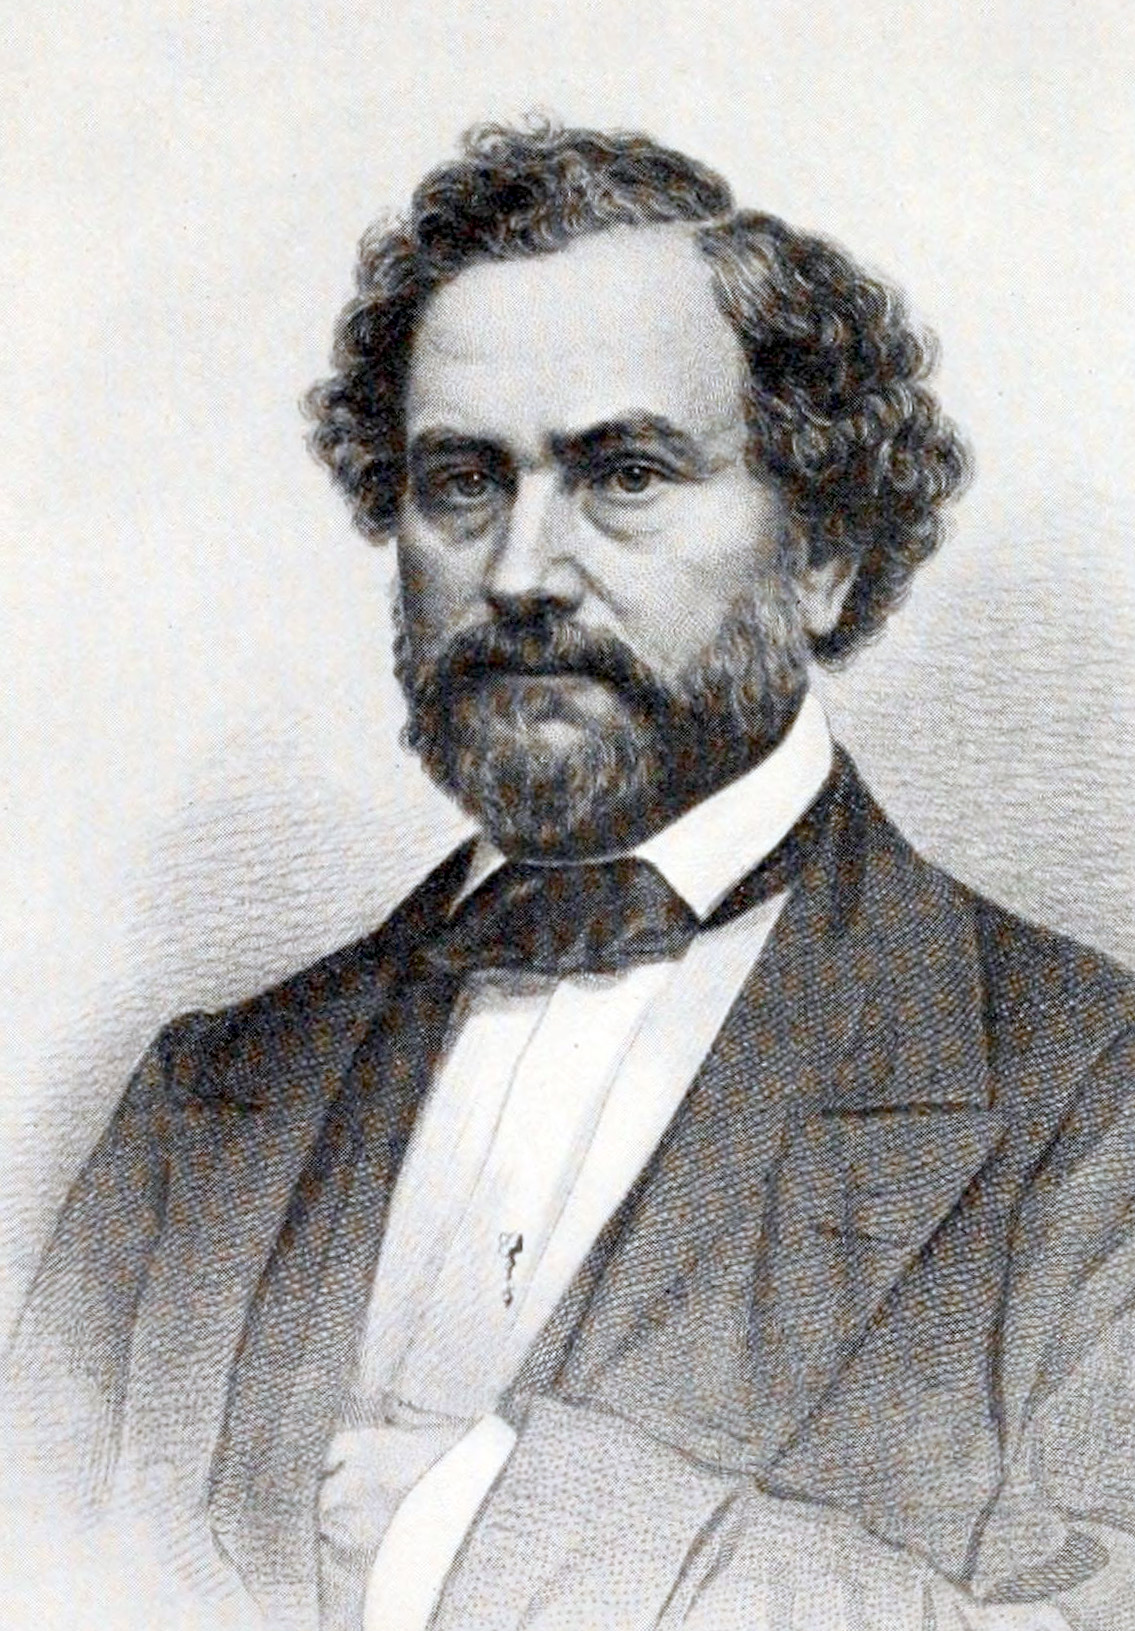 http://upload.wikimedia.org/wikipedia/commons/3/3f/SamuelColt.jpg